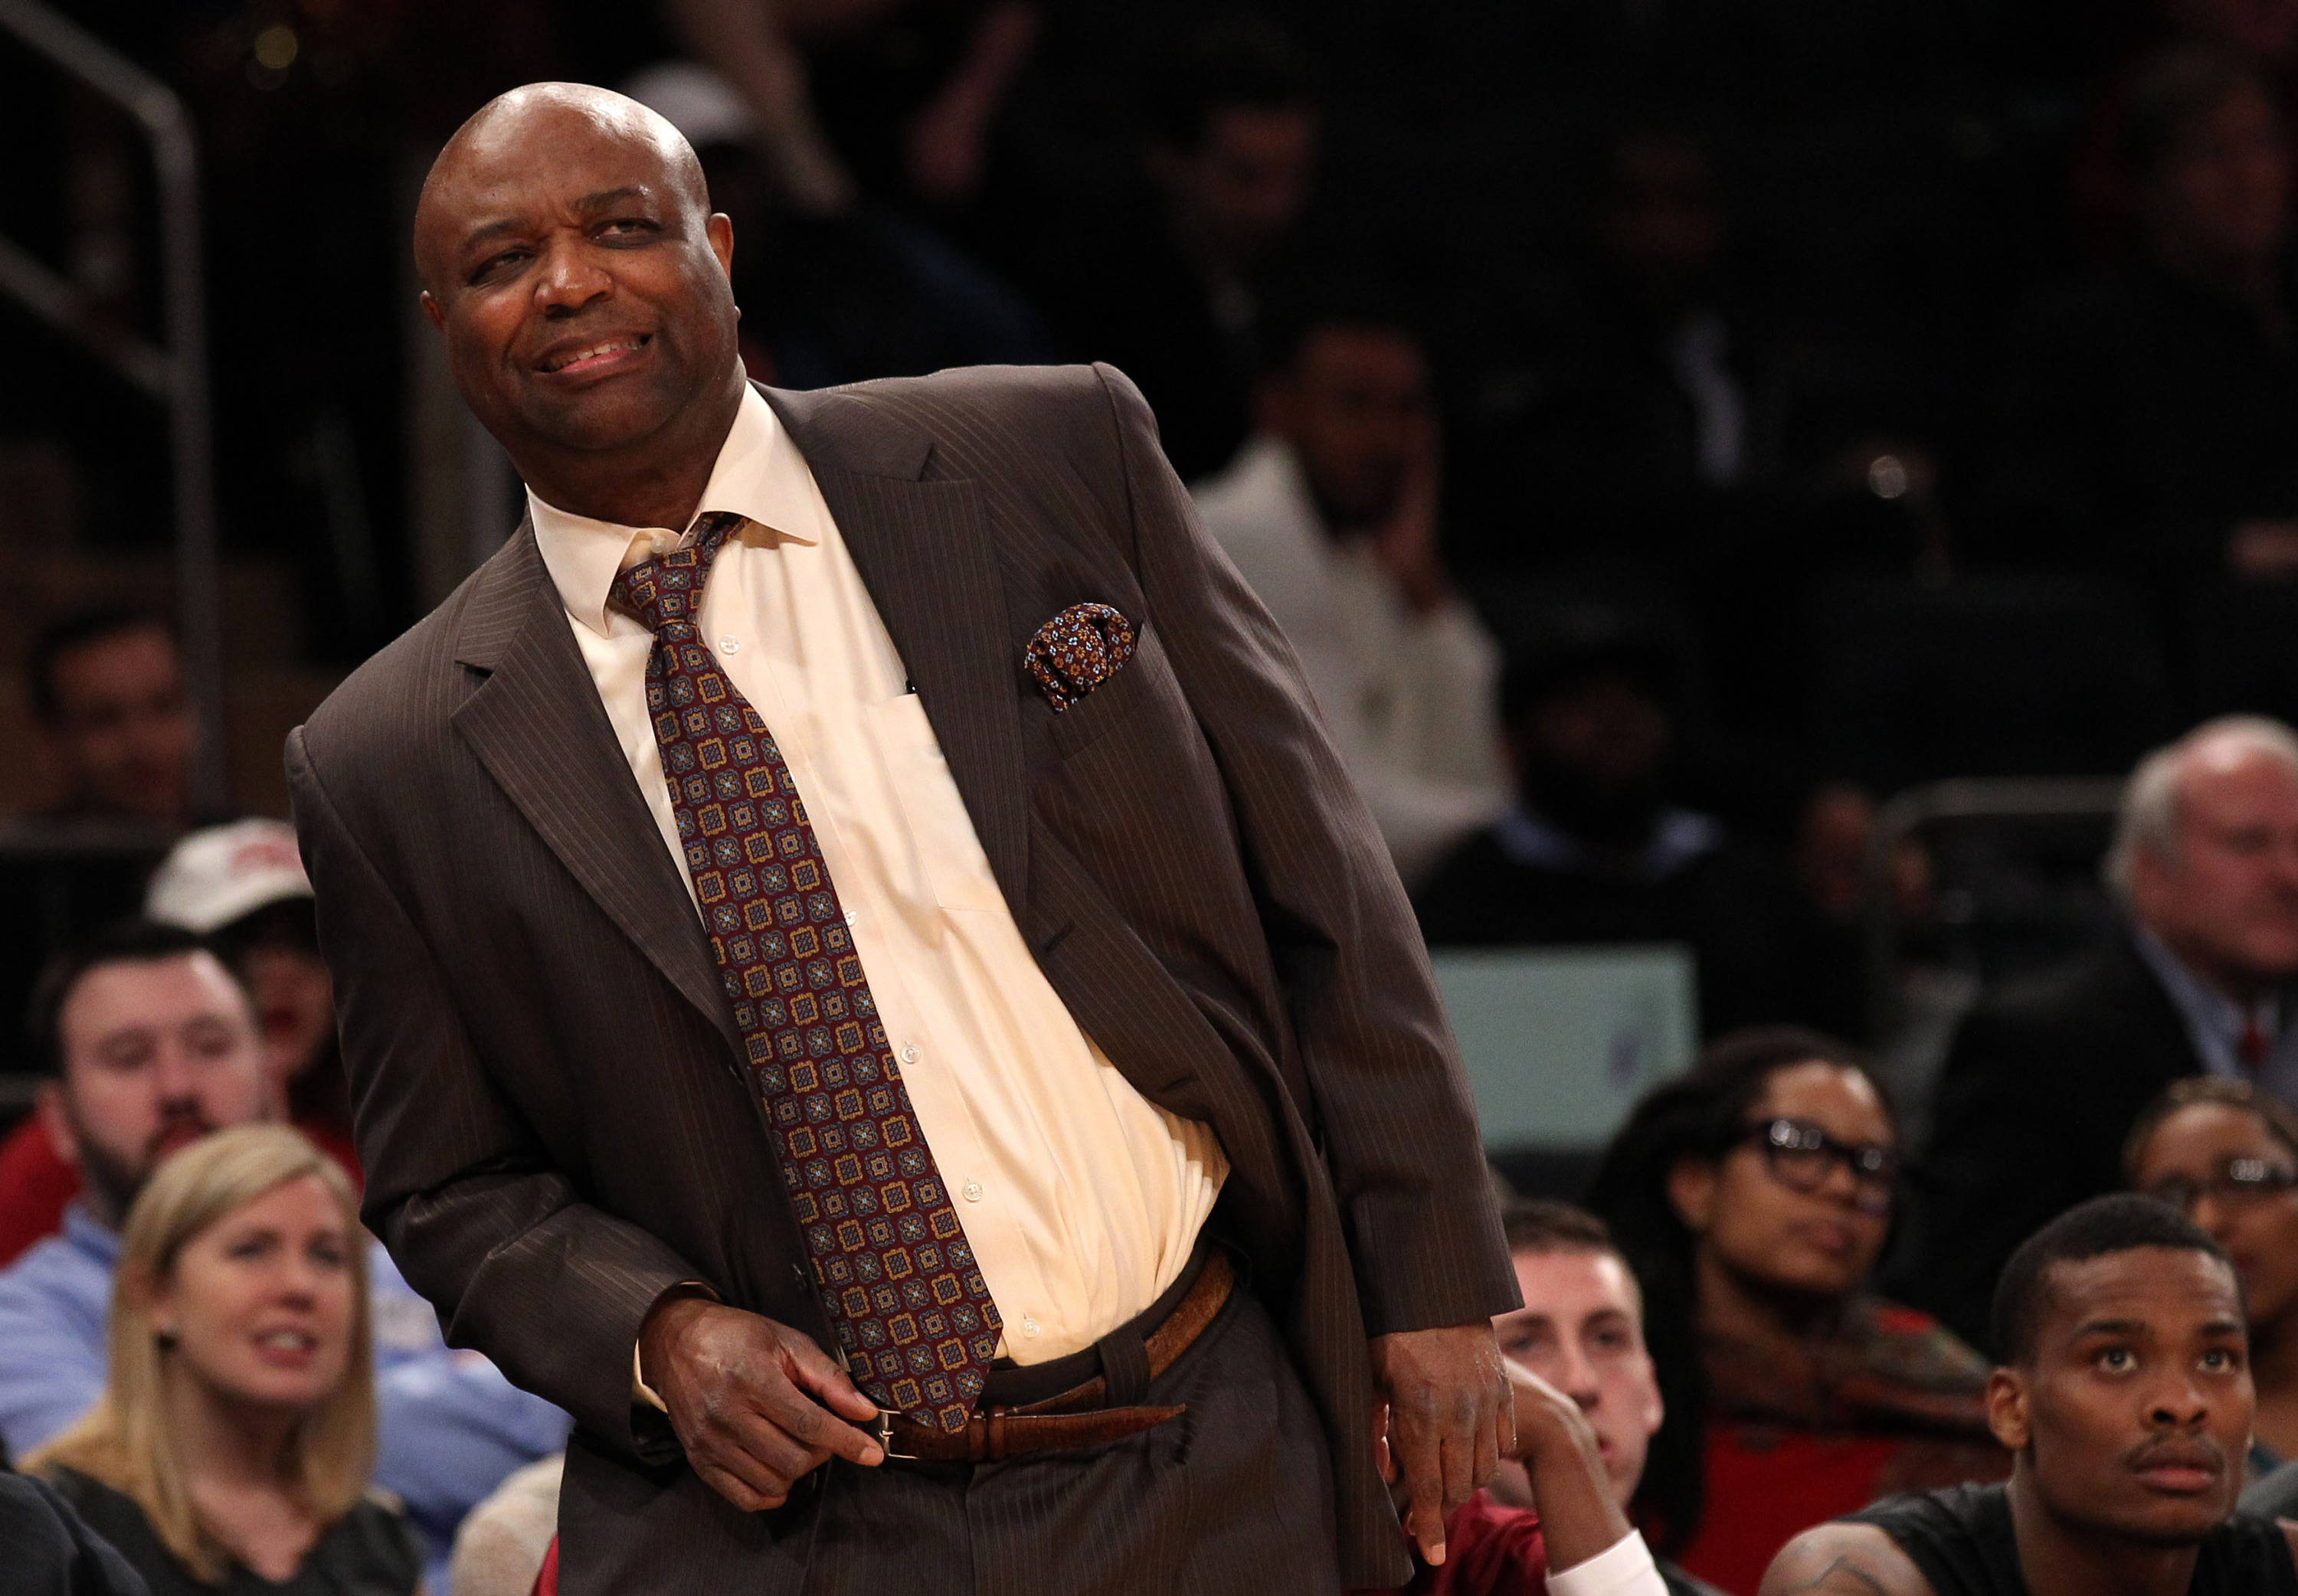 Apr 1, 2014; New York, NY, USA; Florida State Seminoles head coach Leonard Hamilton watches a free throw by the Minnesota Golden Gophers during the first half at Madison Square Garden. Mandatory Credit: Adam Hunger-USA TODAY Sports